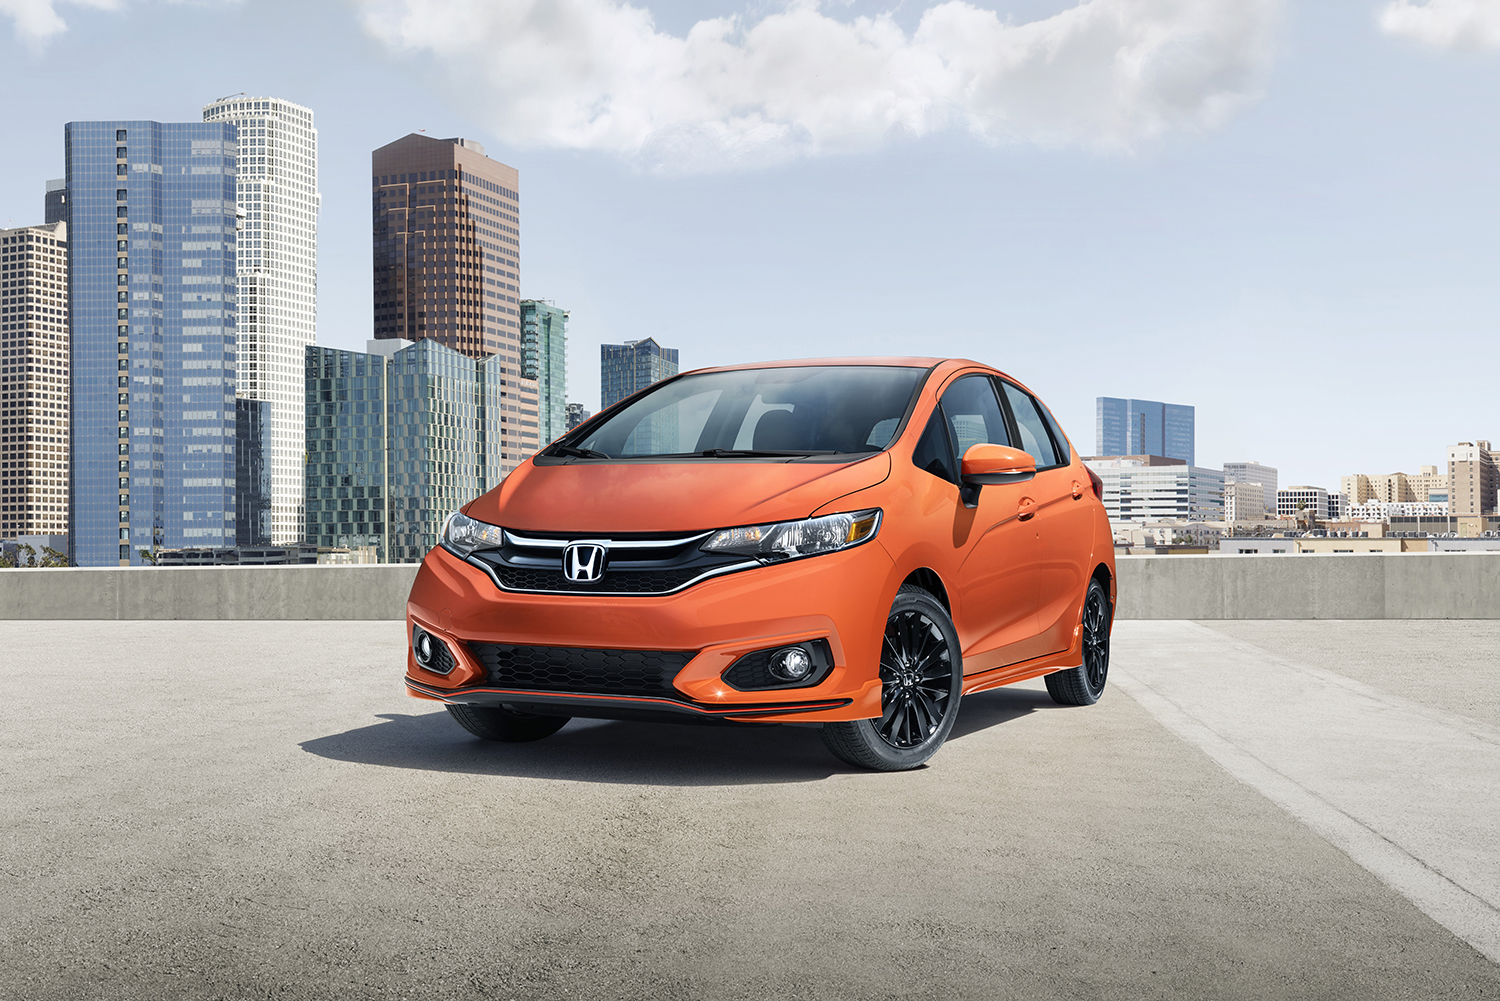 Honda refreshes the Fit for 2018